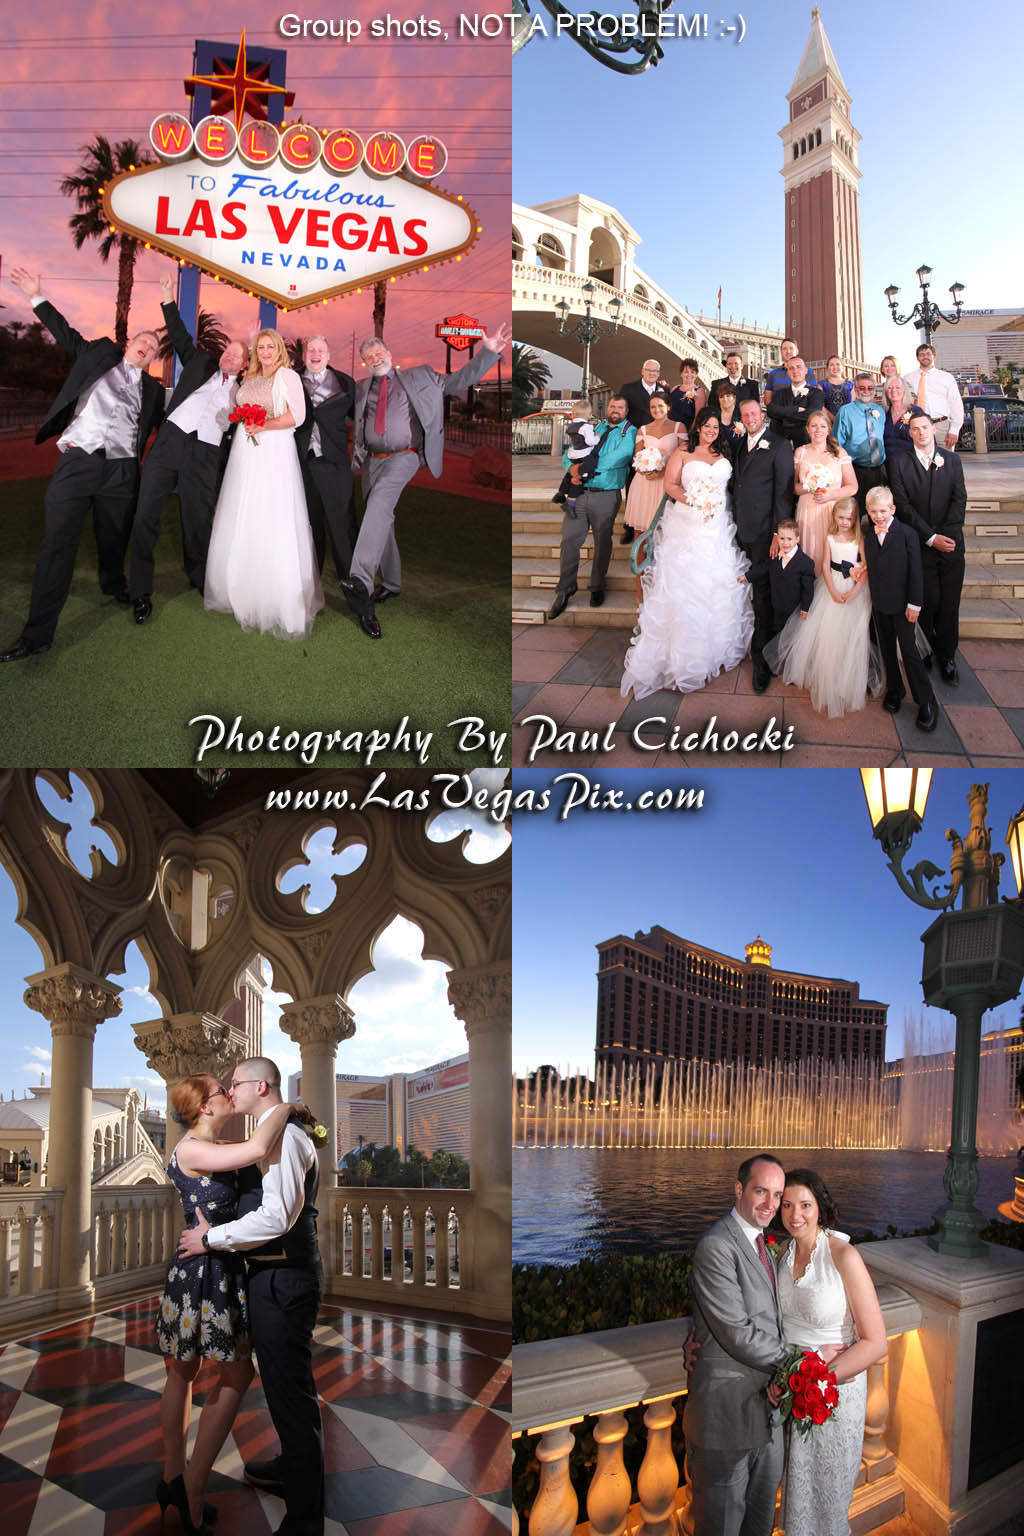 Affordable Las Vegas Wedding Photography Offers Budget Prices On LasVegas Weddings Photographer Chapel Minister Chapels Elvis Casino Event Reception Cheap